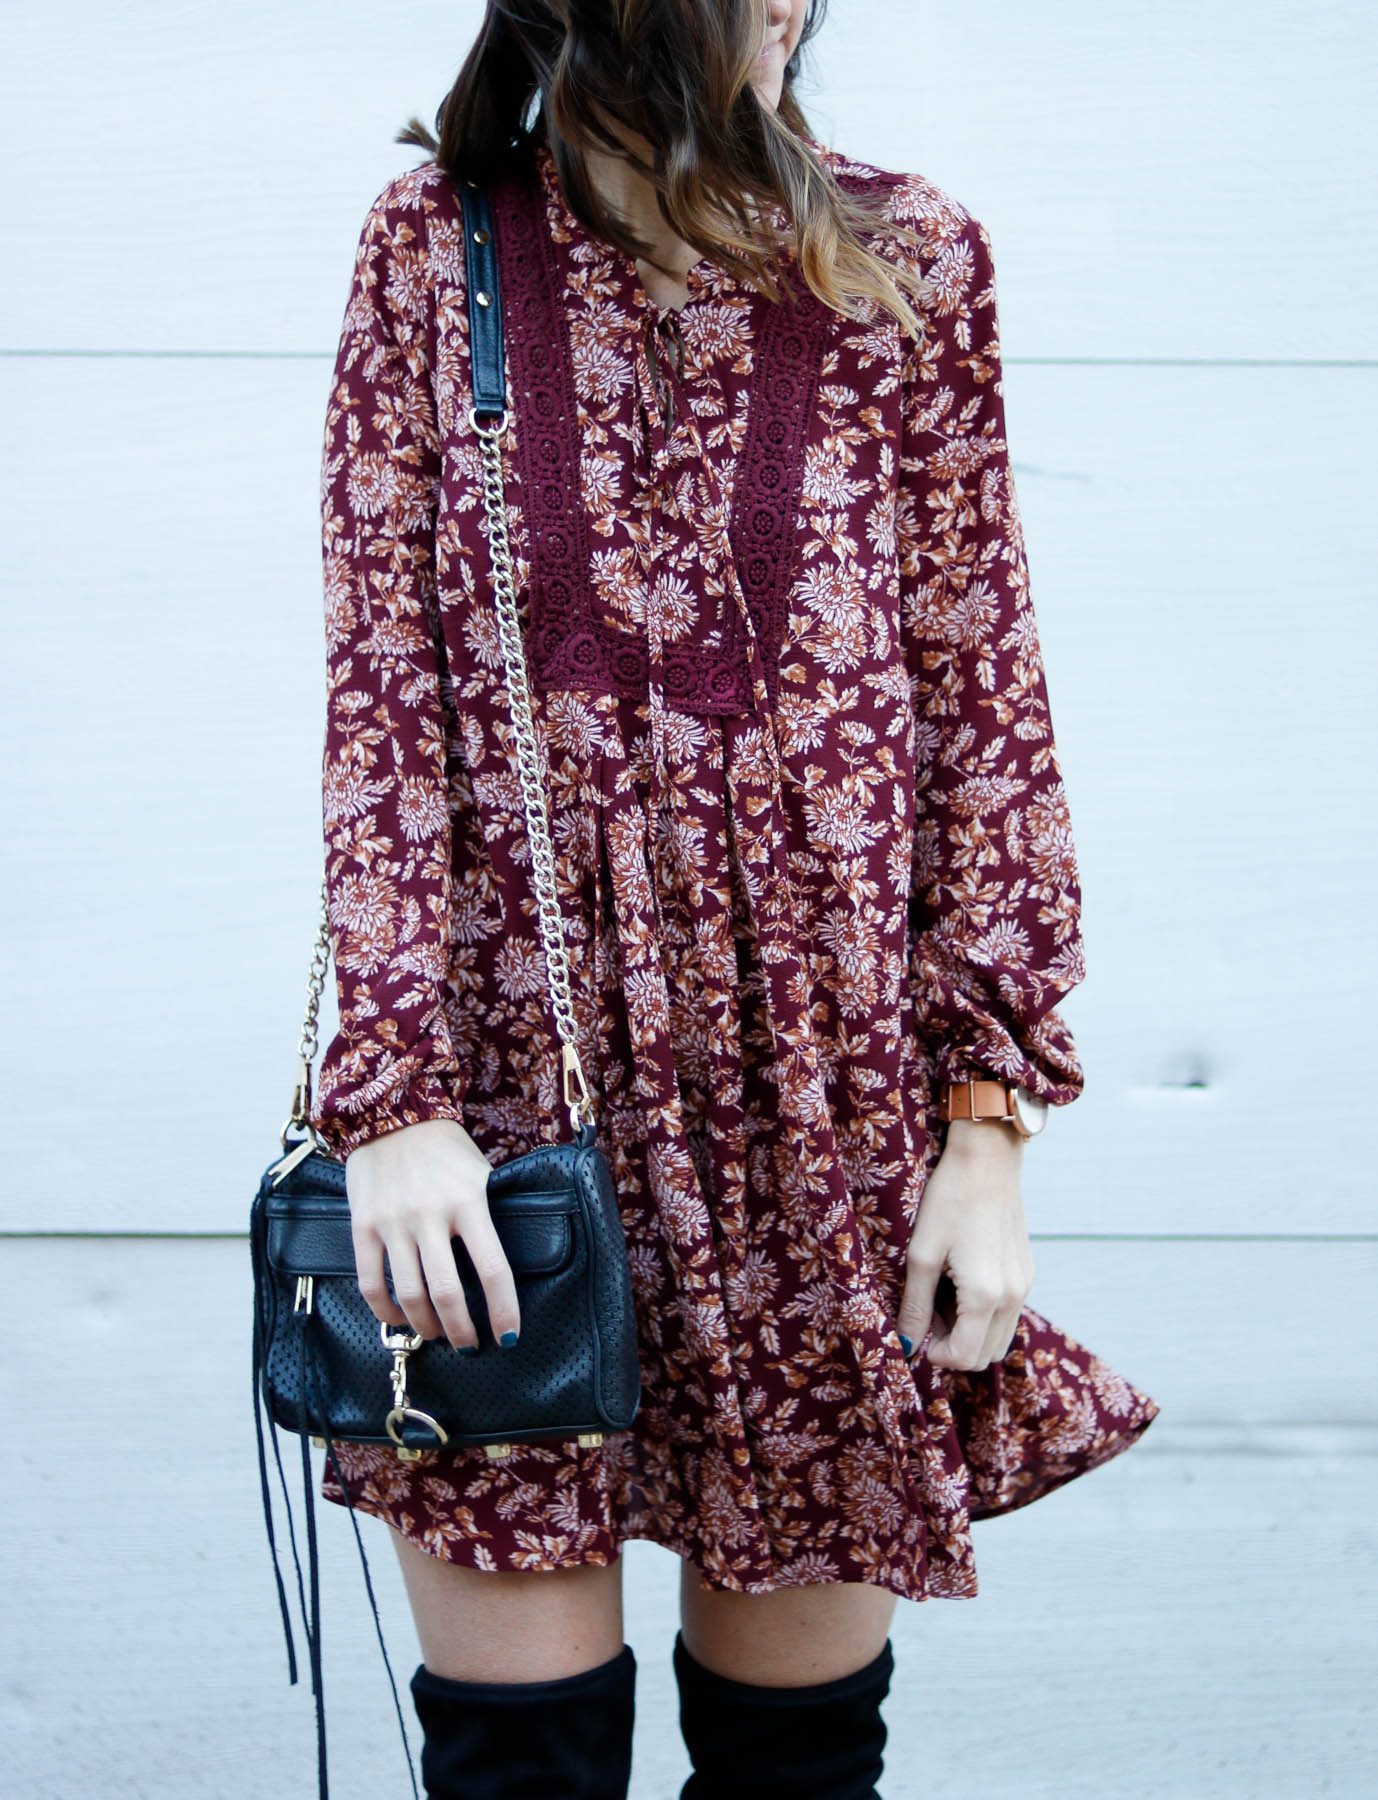 Maroon long sleeve dress paired with over the knee boots.